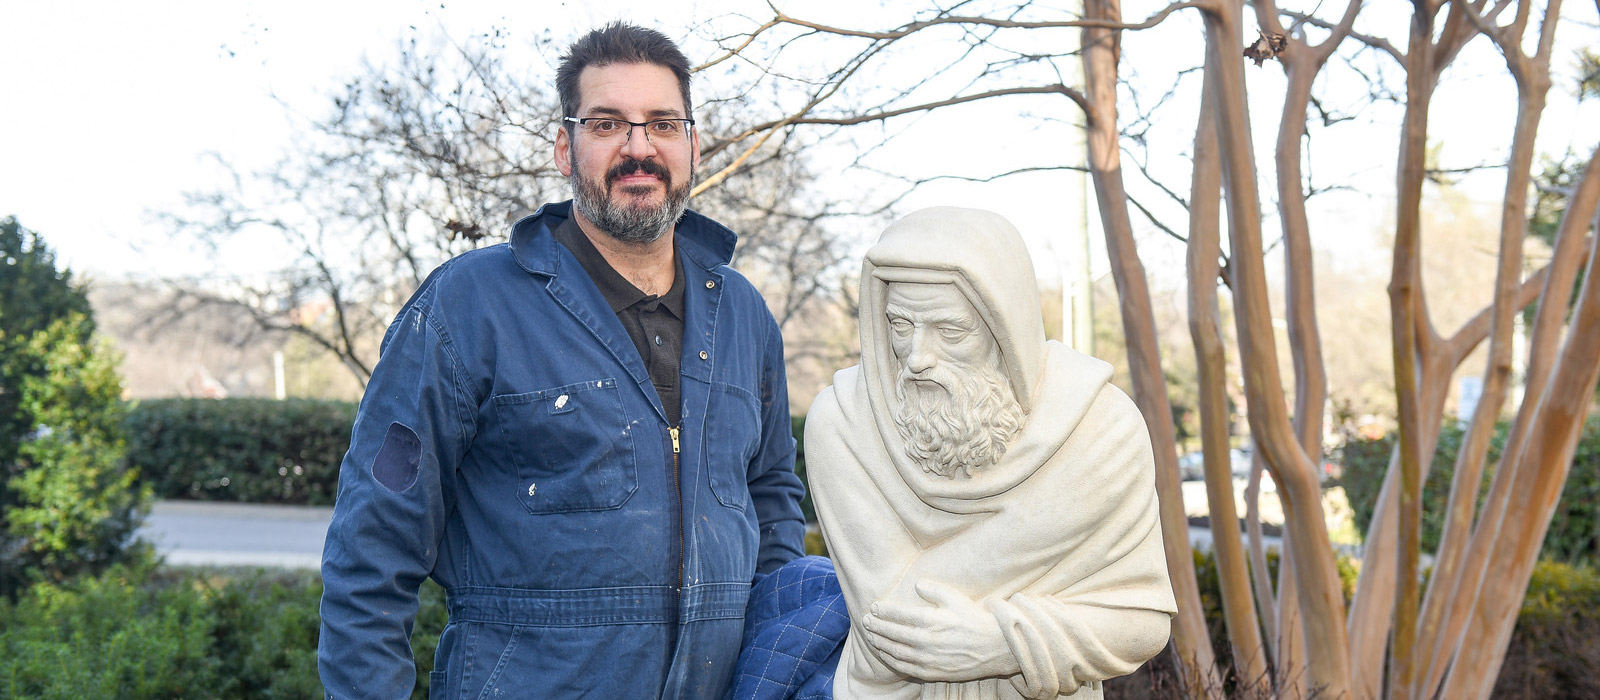 Local Sculptor Completes 11-Year Process of Restoring Historic Campus Statues